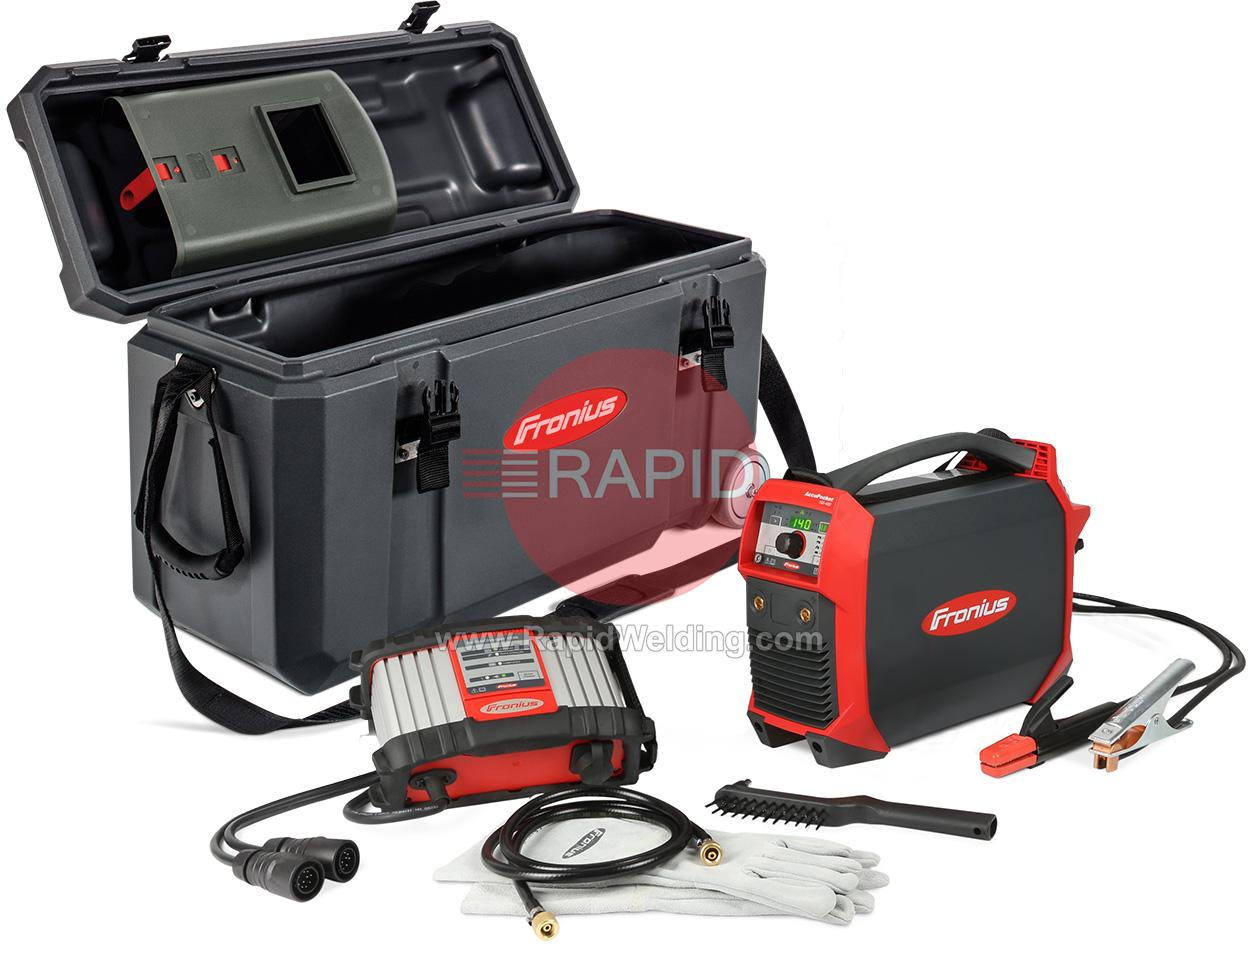 4075200850  Fronius AccuPocket 150 Battery Powered Arc Welder Package with Case, 230v